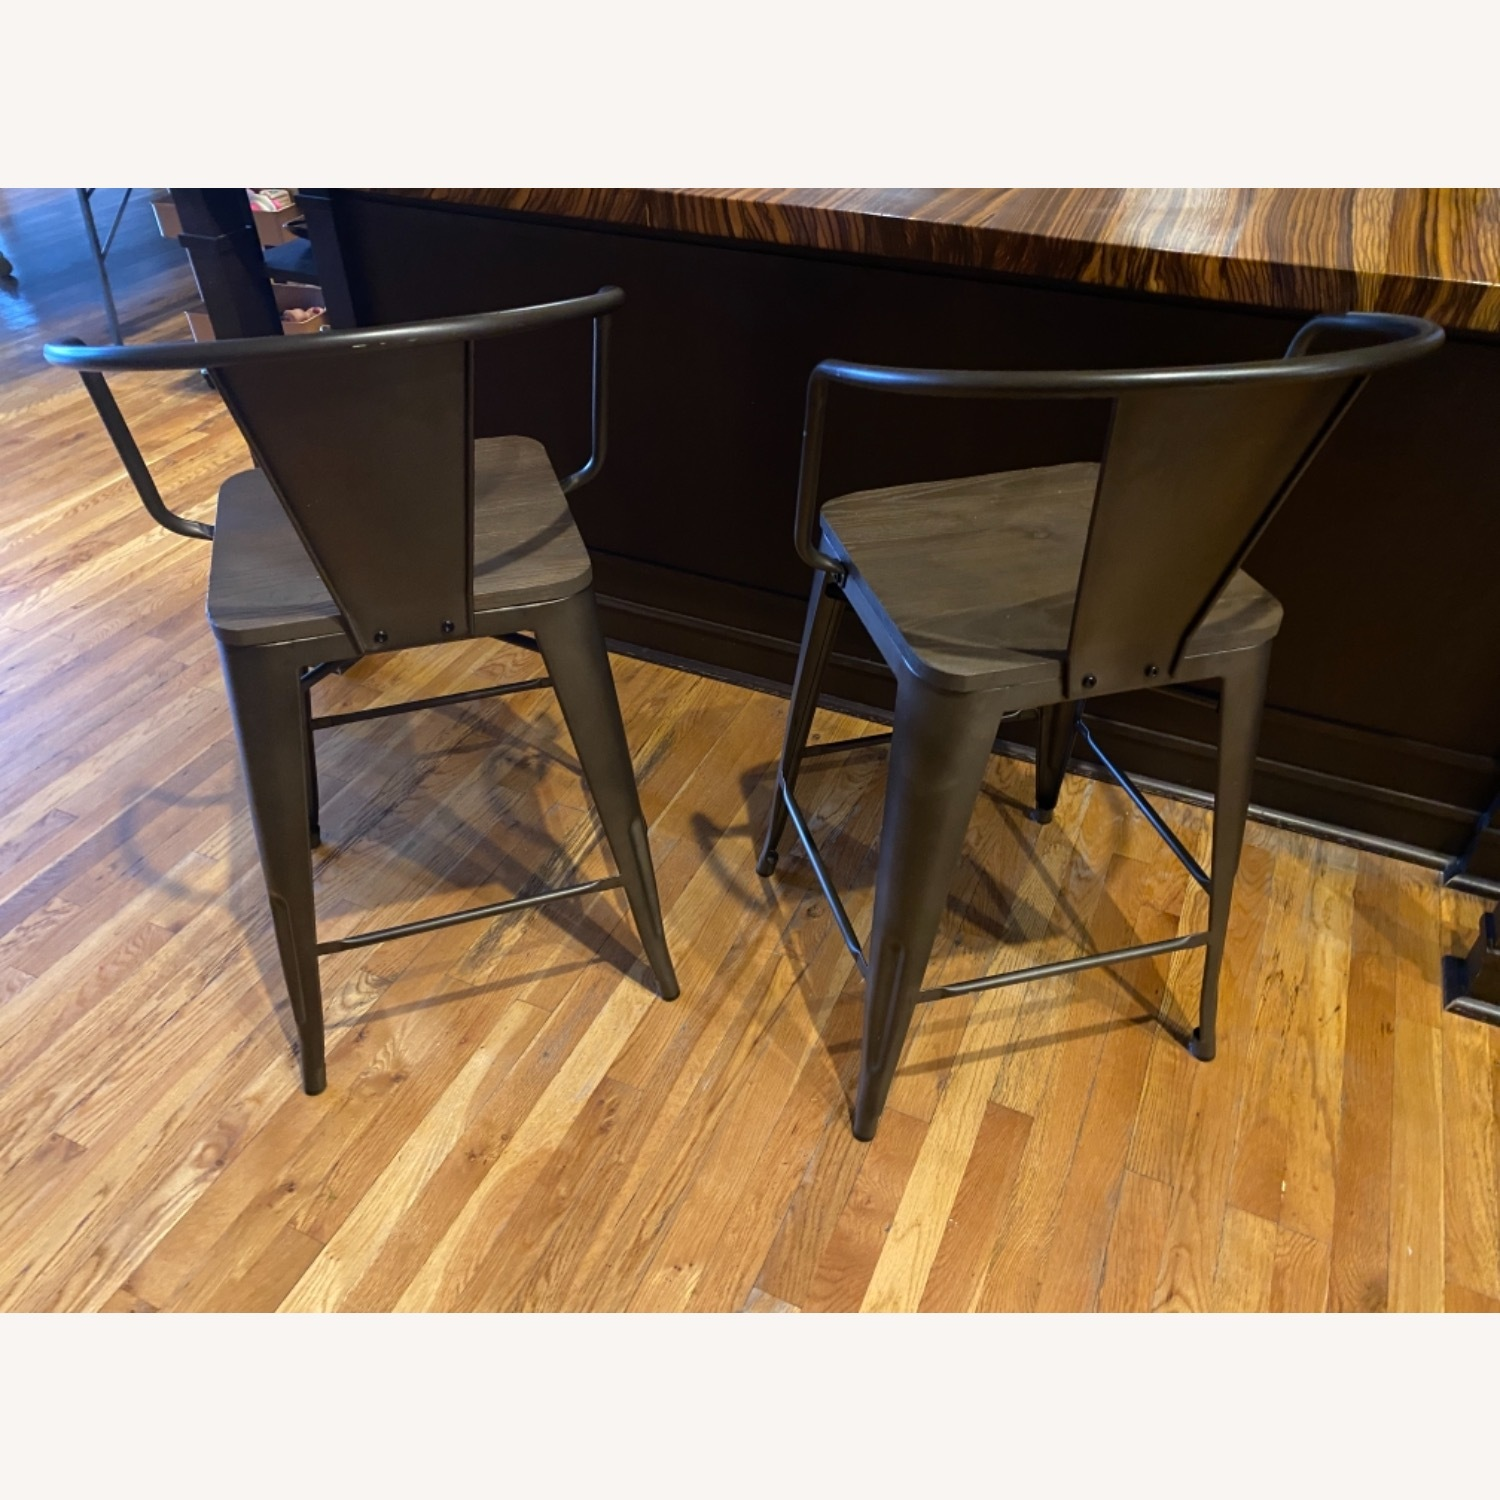 Wayfair Set of two Industrial Counter Stools - image-3